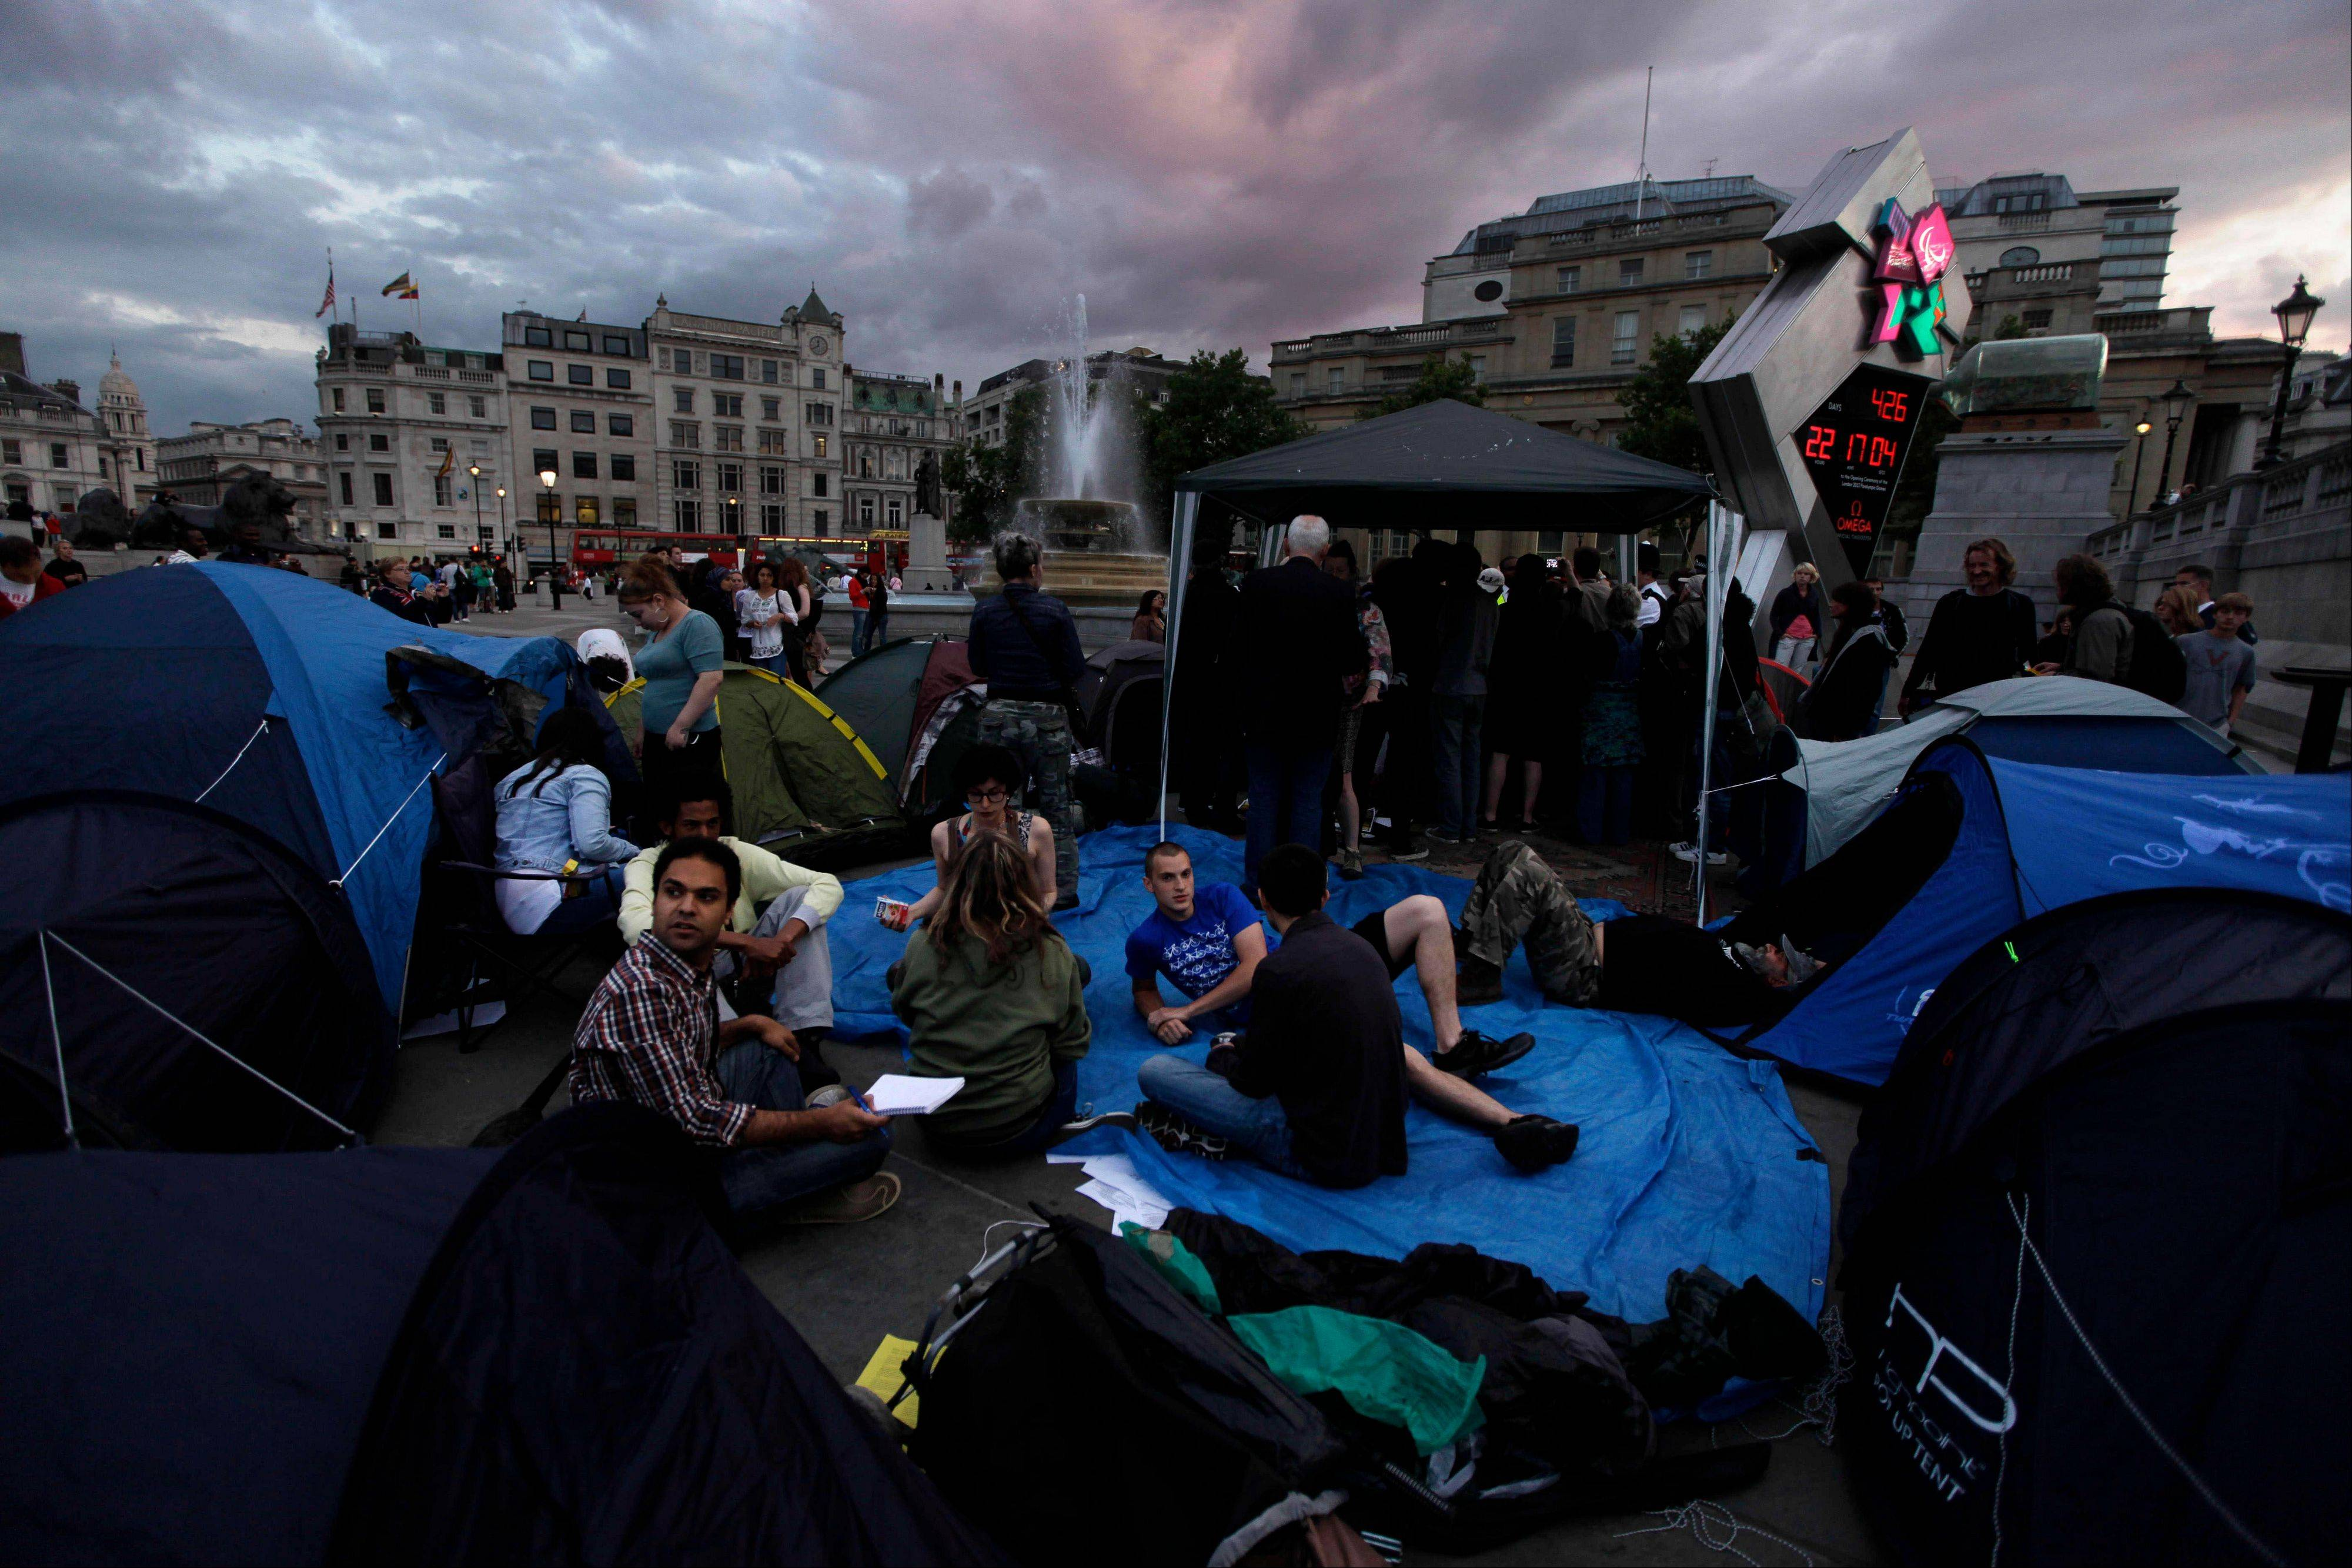 Activists sit among tents in Trafalgar Square in preparation of the strikes taking place in Britain on Thursday. Thousands of British schools will close and travelers will face long lines at airport immigration Thursday when three quarters of a million workers go on strike.